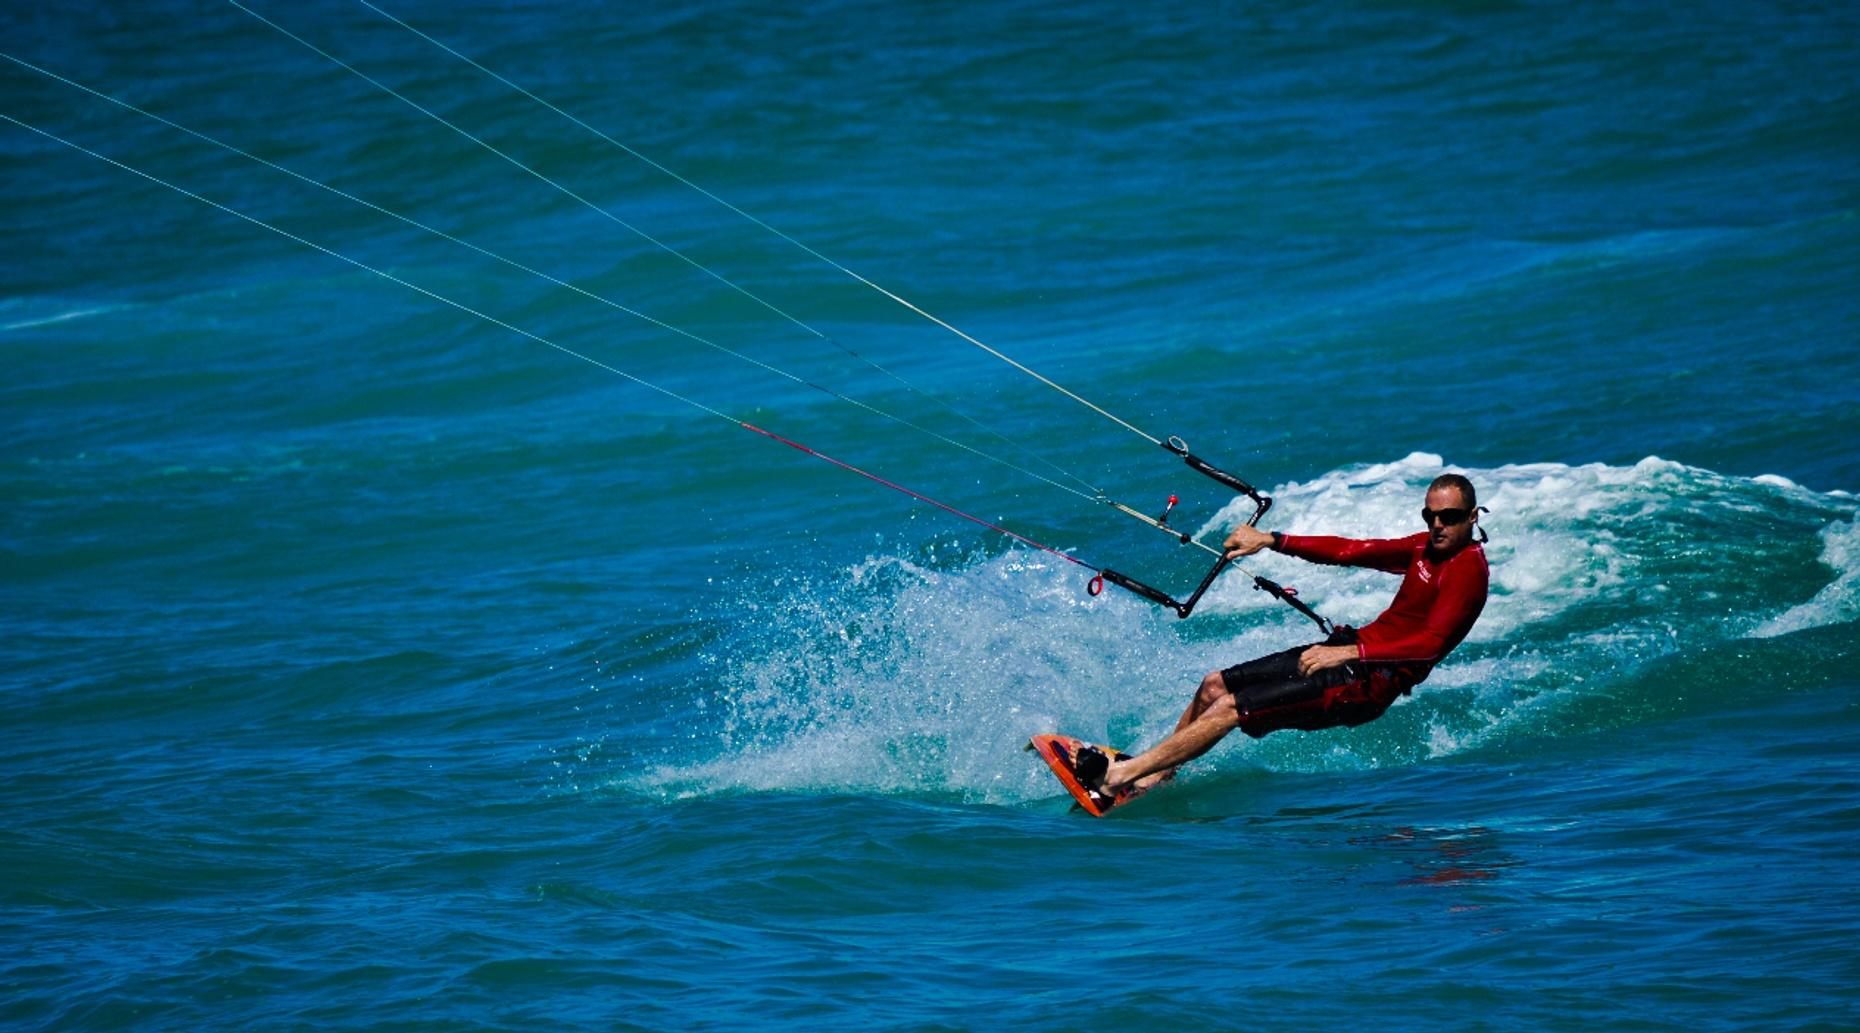 Two-Hour Kitesurfing Lesson in Fort Lauderdale